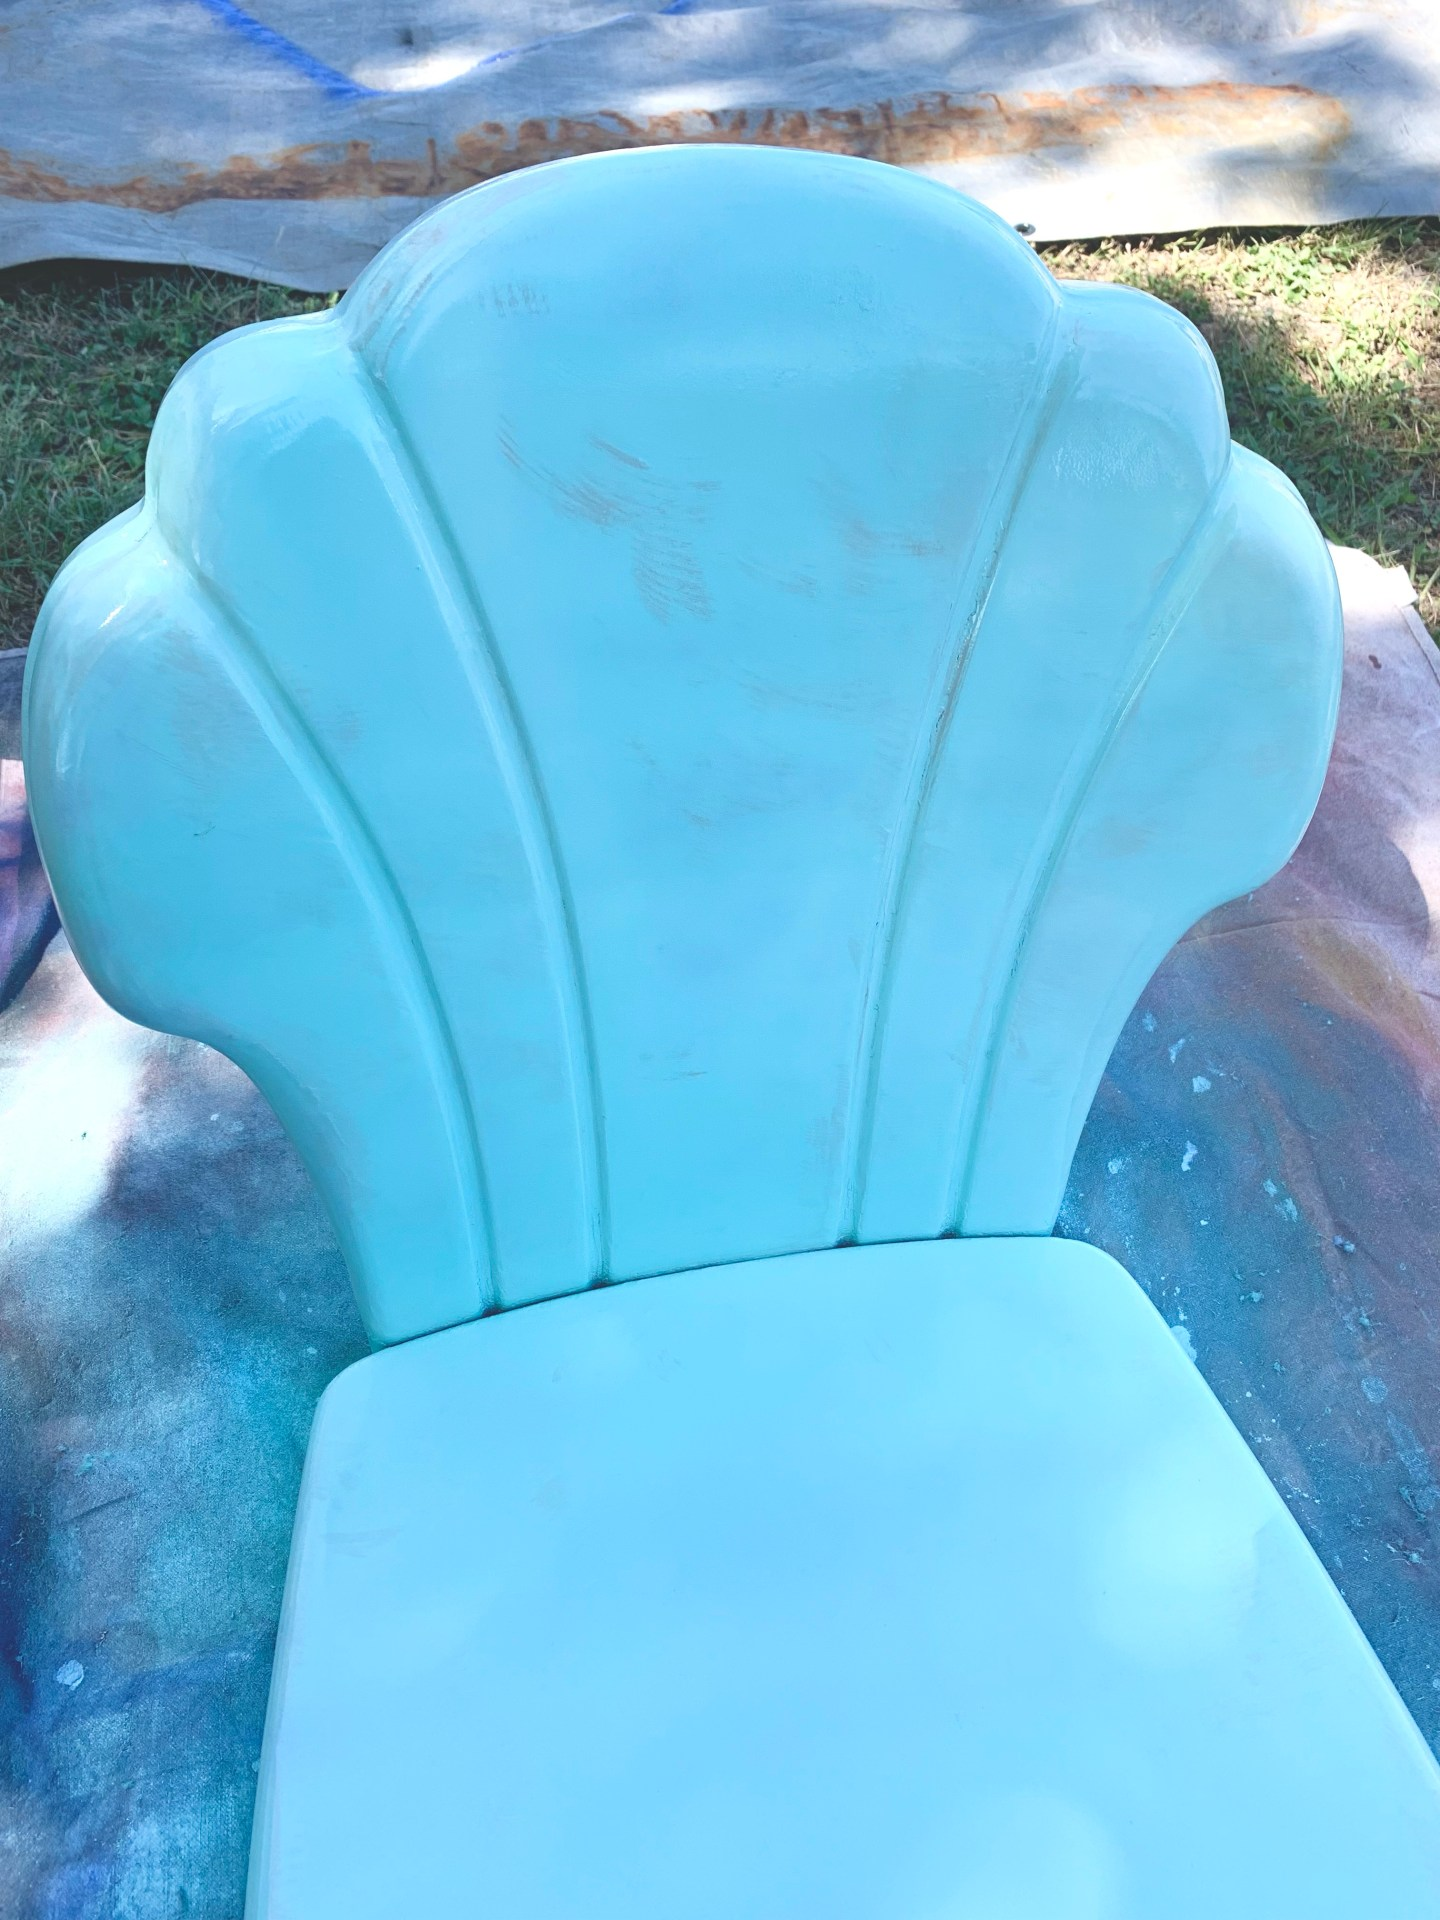 Use primer when painting vintage metal chairs to prevent bleed through.